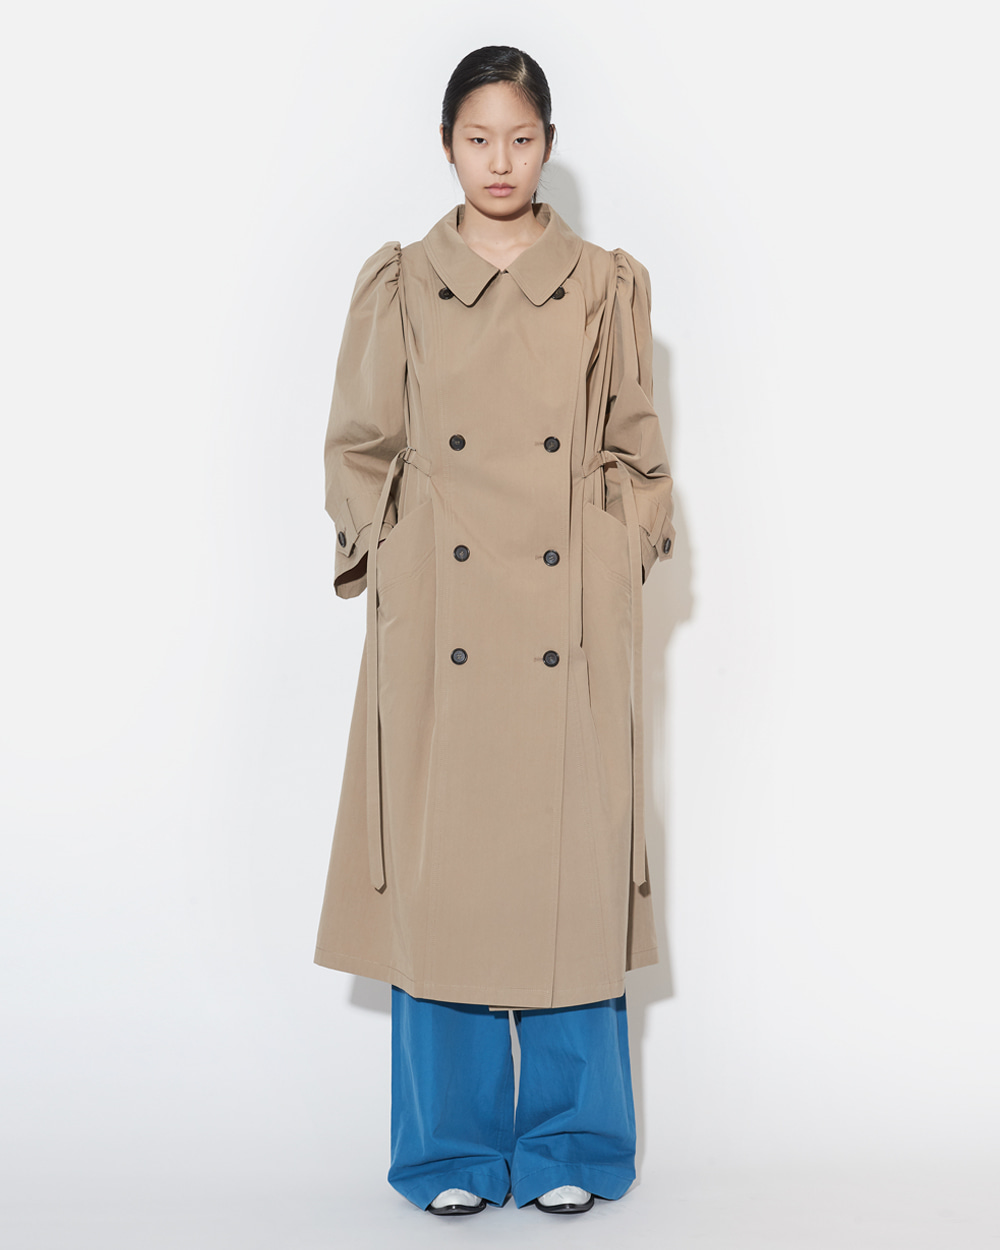 SS19 TRANSFORMER TRENCH COAT